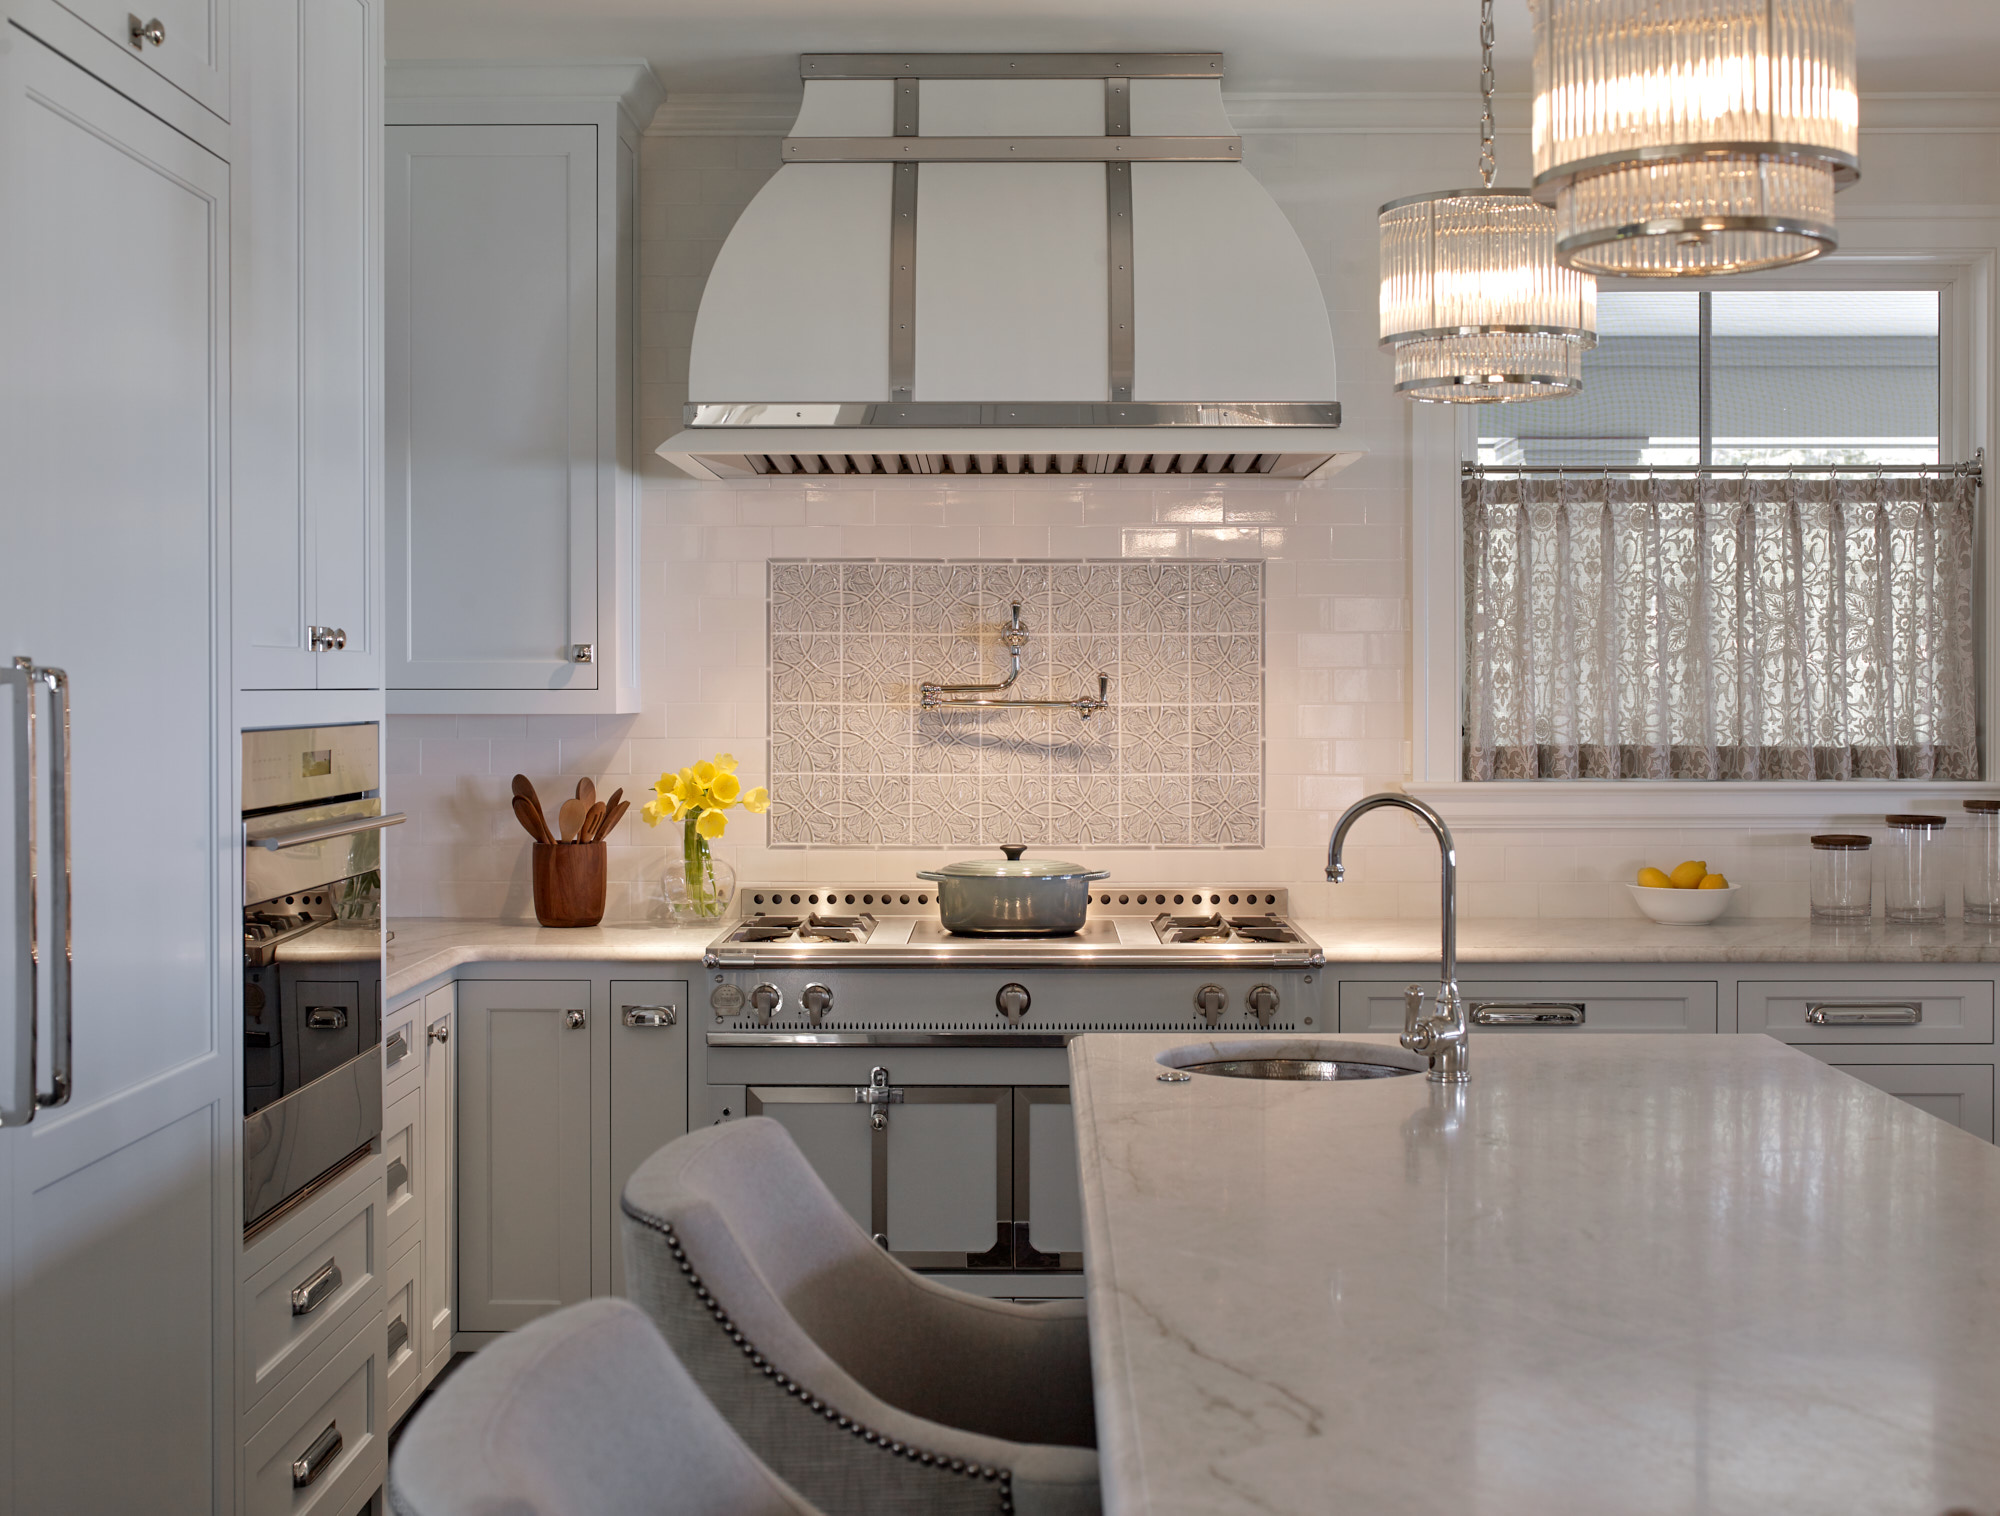 A white and marble kitchen with an island and a 1908 La Cornue stove